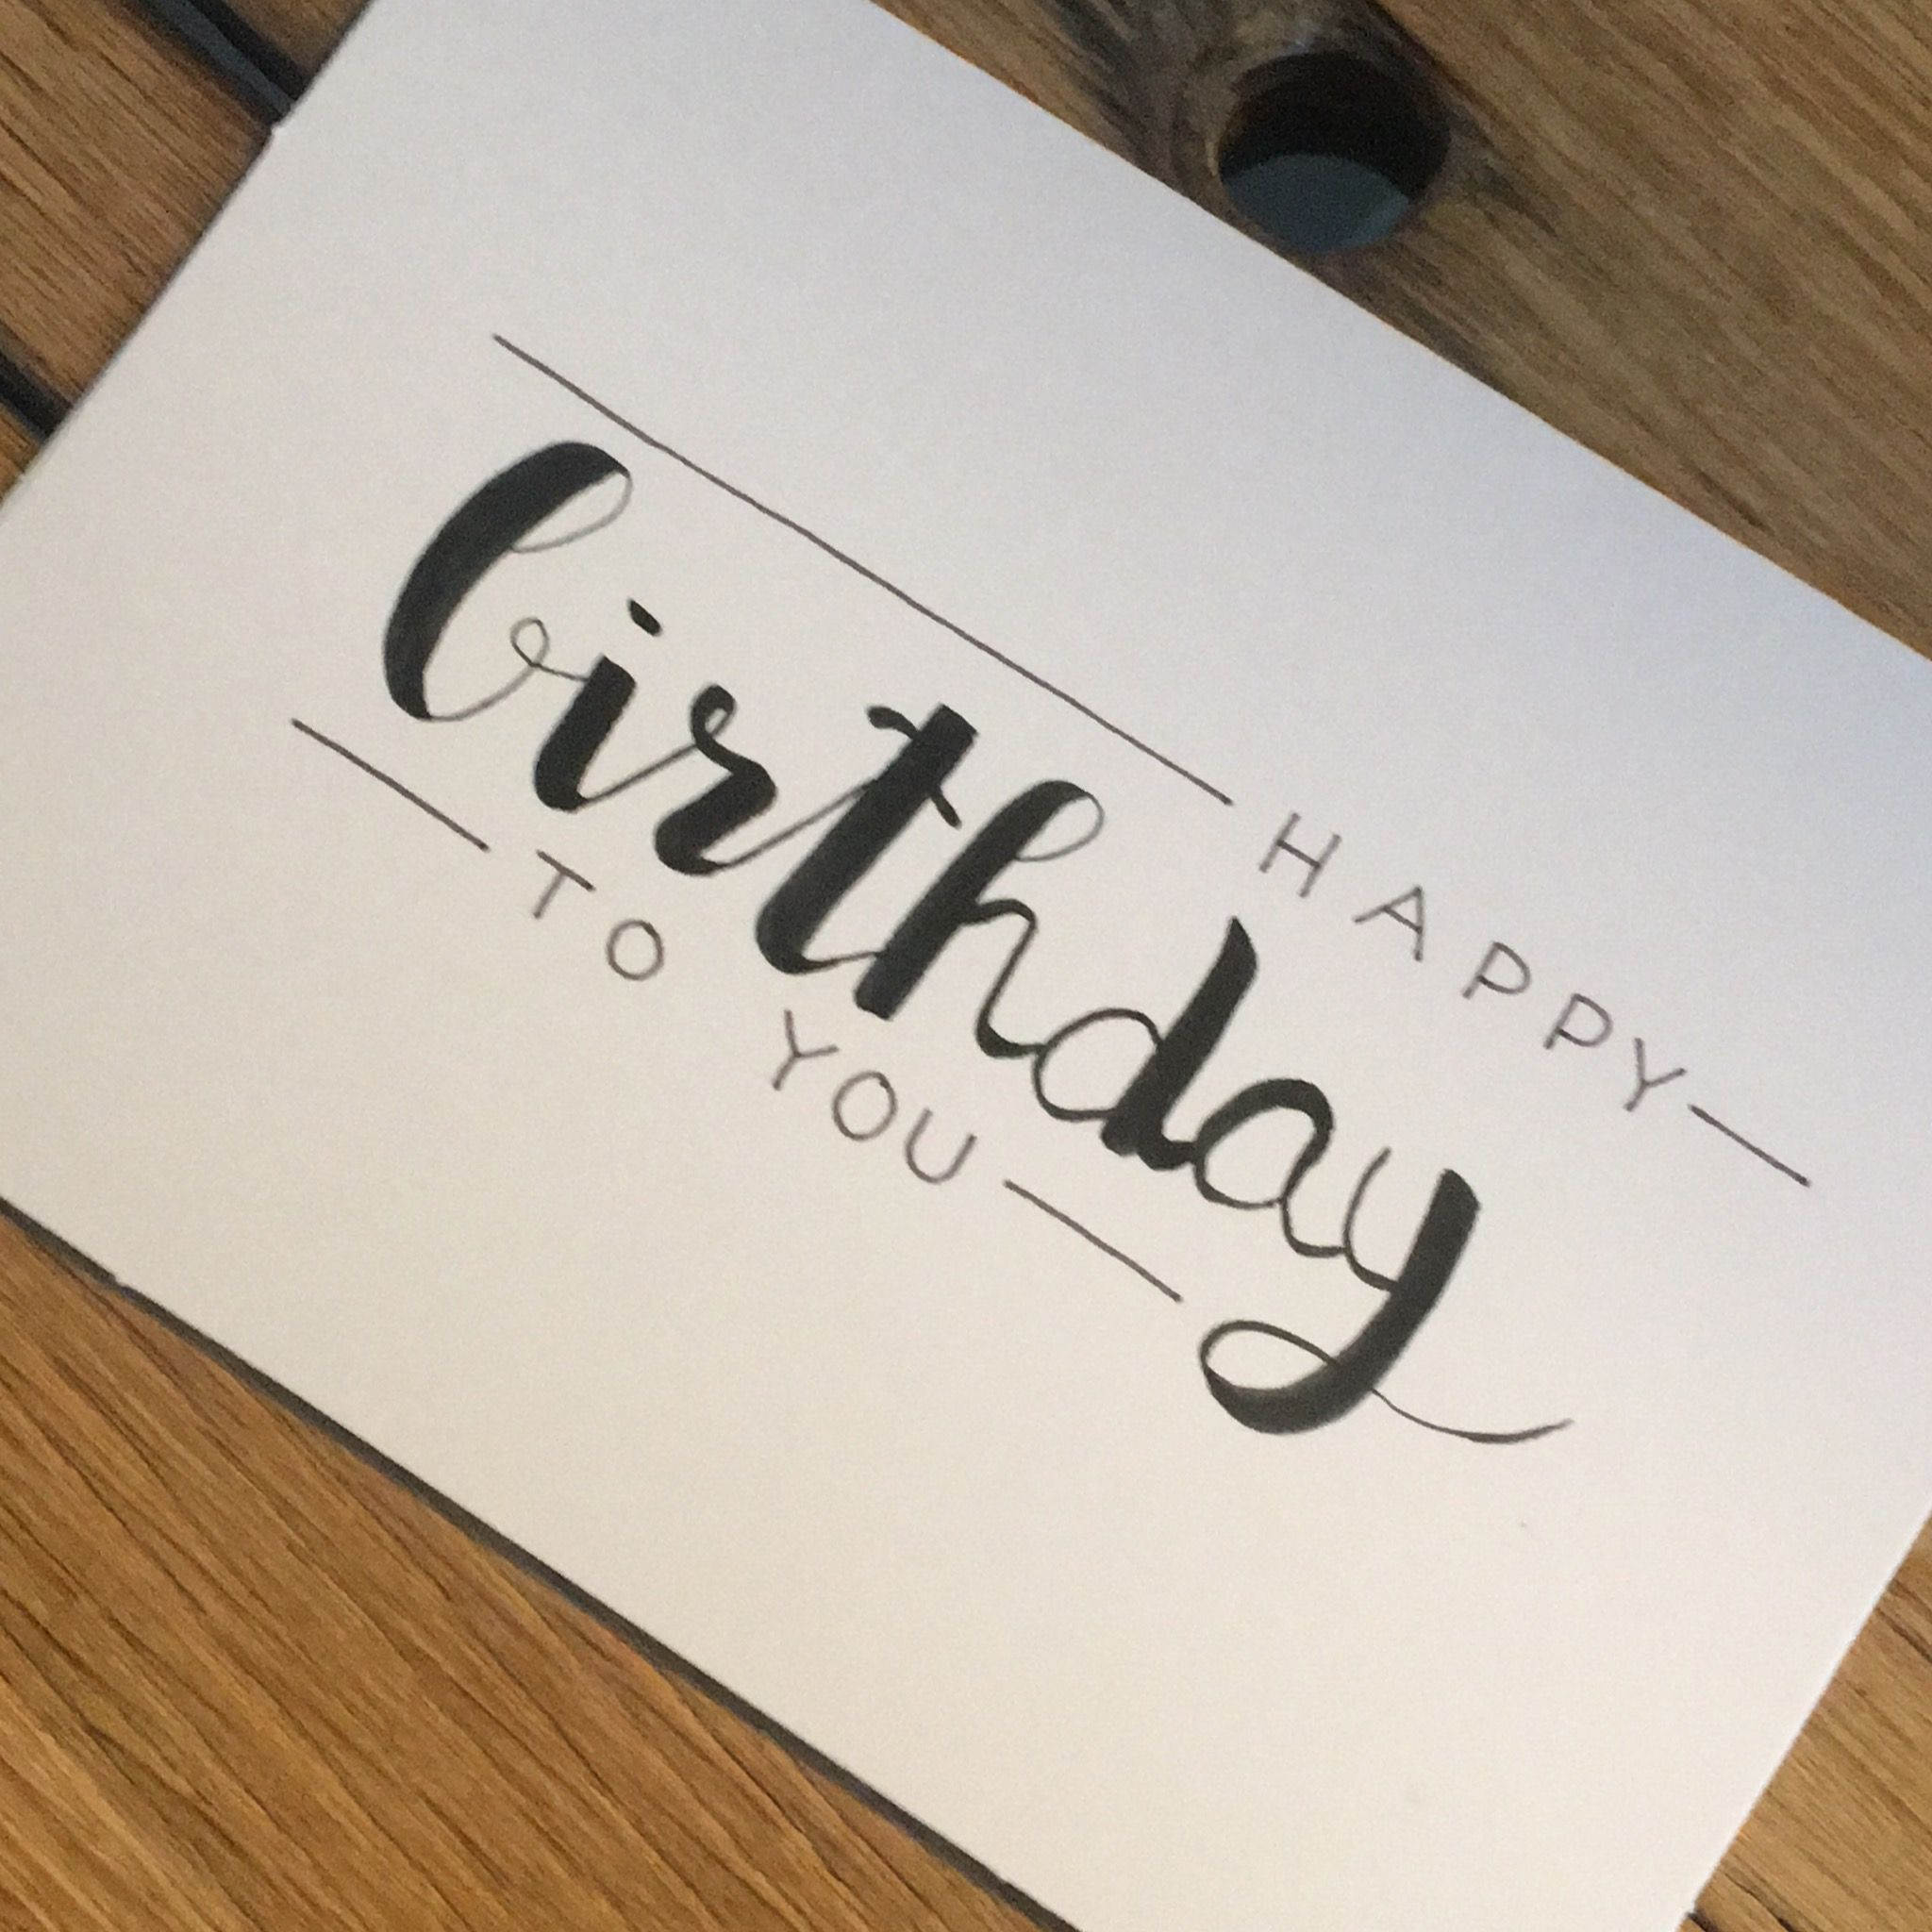 Most Current Photos Happy Birthday Card Strategies Obtaining Your Friends And Family Humorous Car In 2021 Hand Lettering Cards Birthday Card Drawing Calligraphy Cards